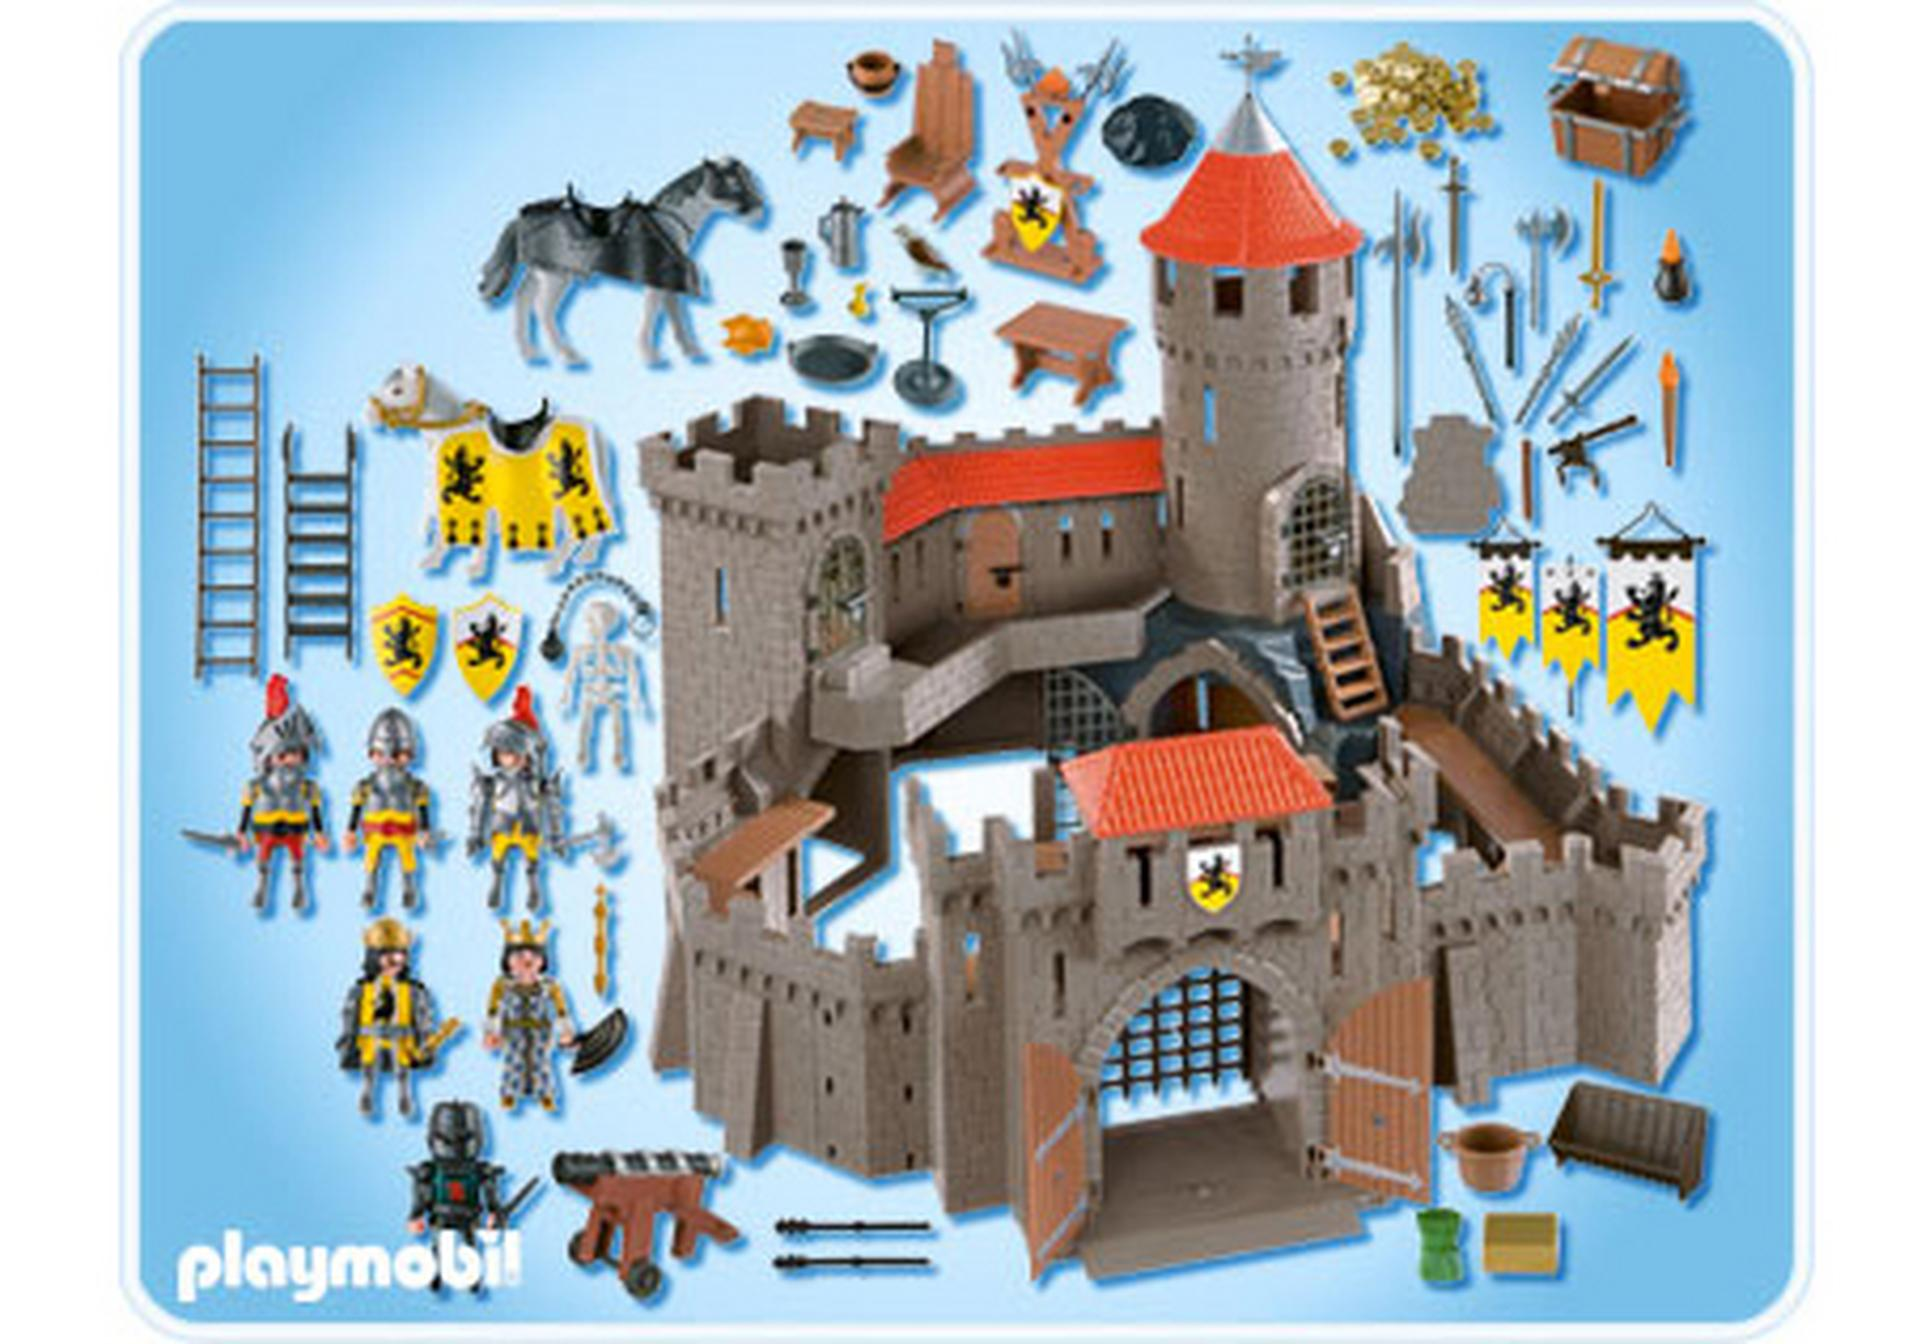 ch teau fort des chevaliers du lion 4865 a playmobil. Black Bedroom Furniture Sets. Home Design Ideas